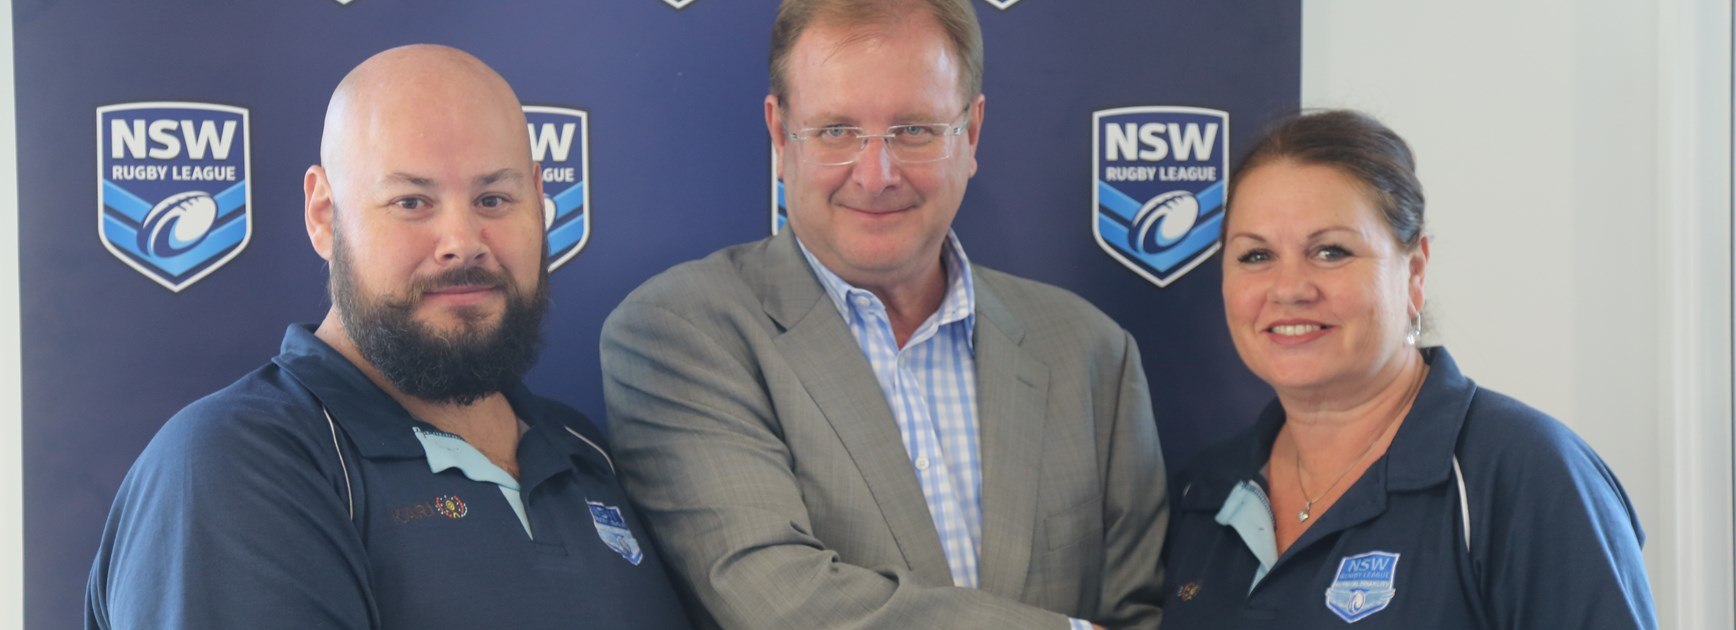 NSWRL presents annual grants for affiliates programs